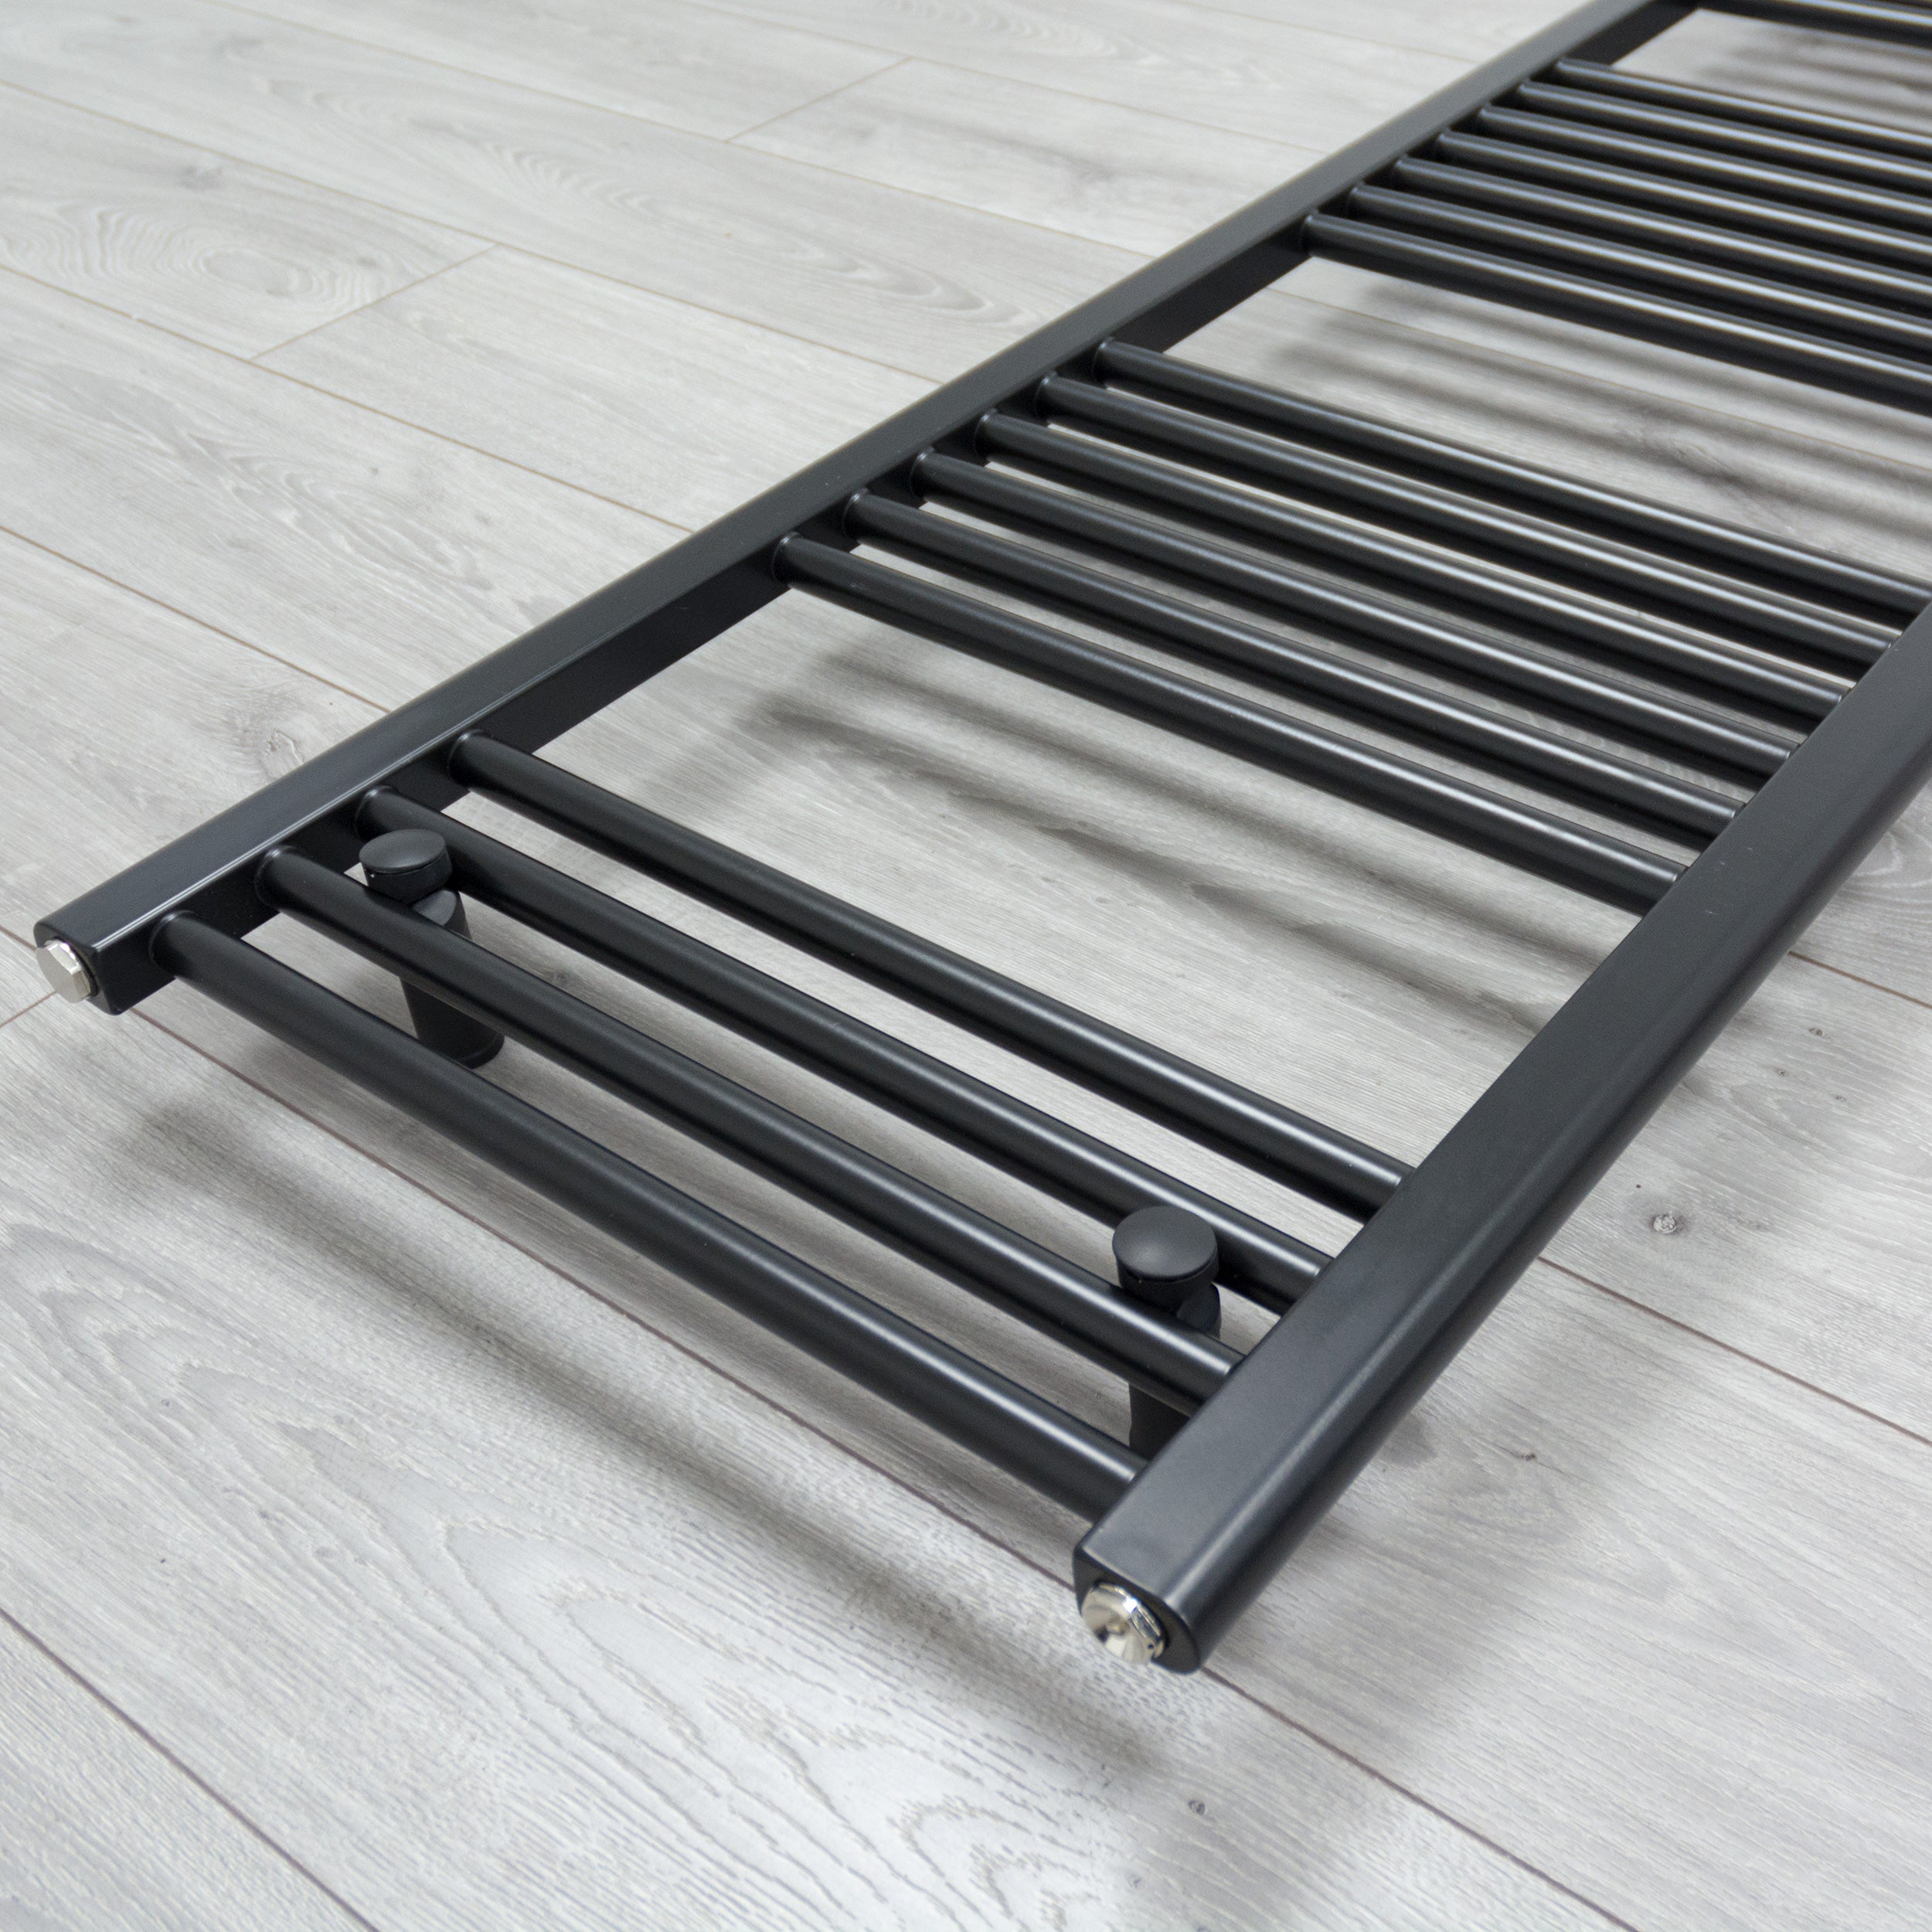 600mm x 1600mm Black Heated Towel Rail Radiator Close Up Image